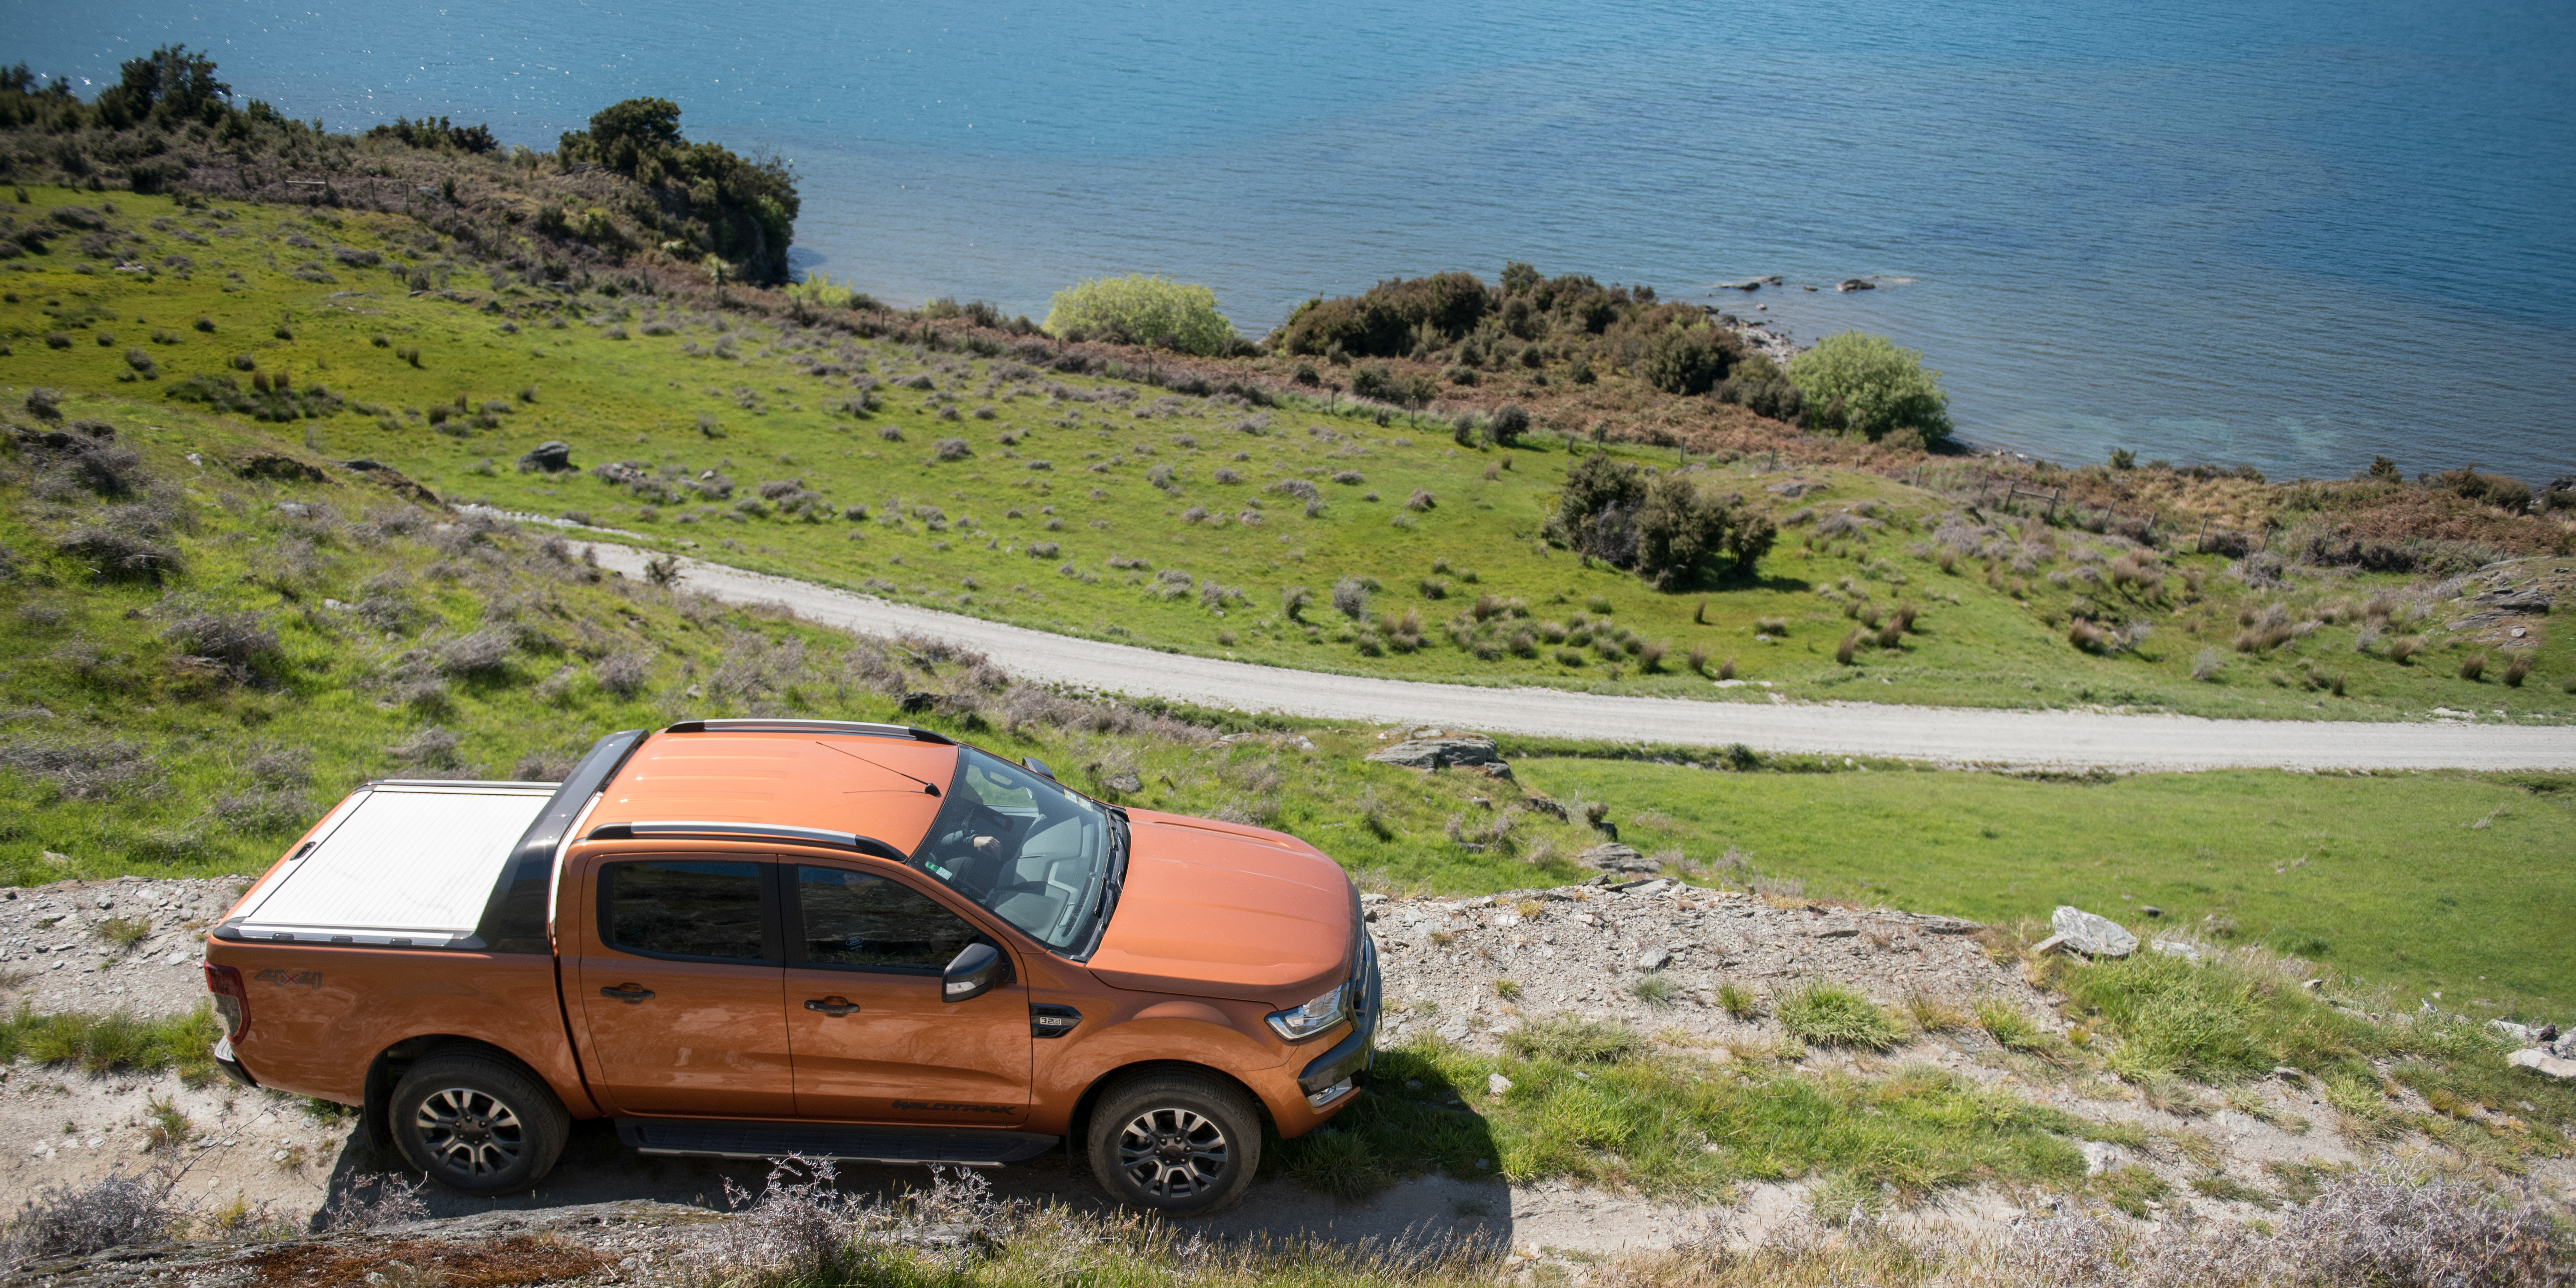 Model 2016 Ford Ranger  Lifestyle Adventure In New Zealand